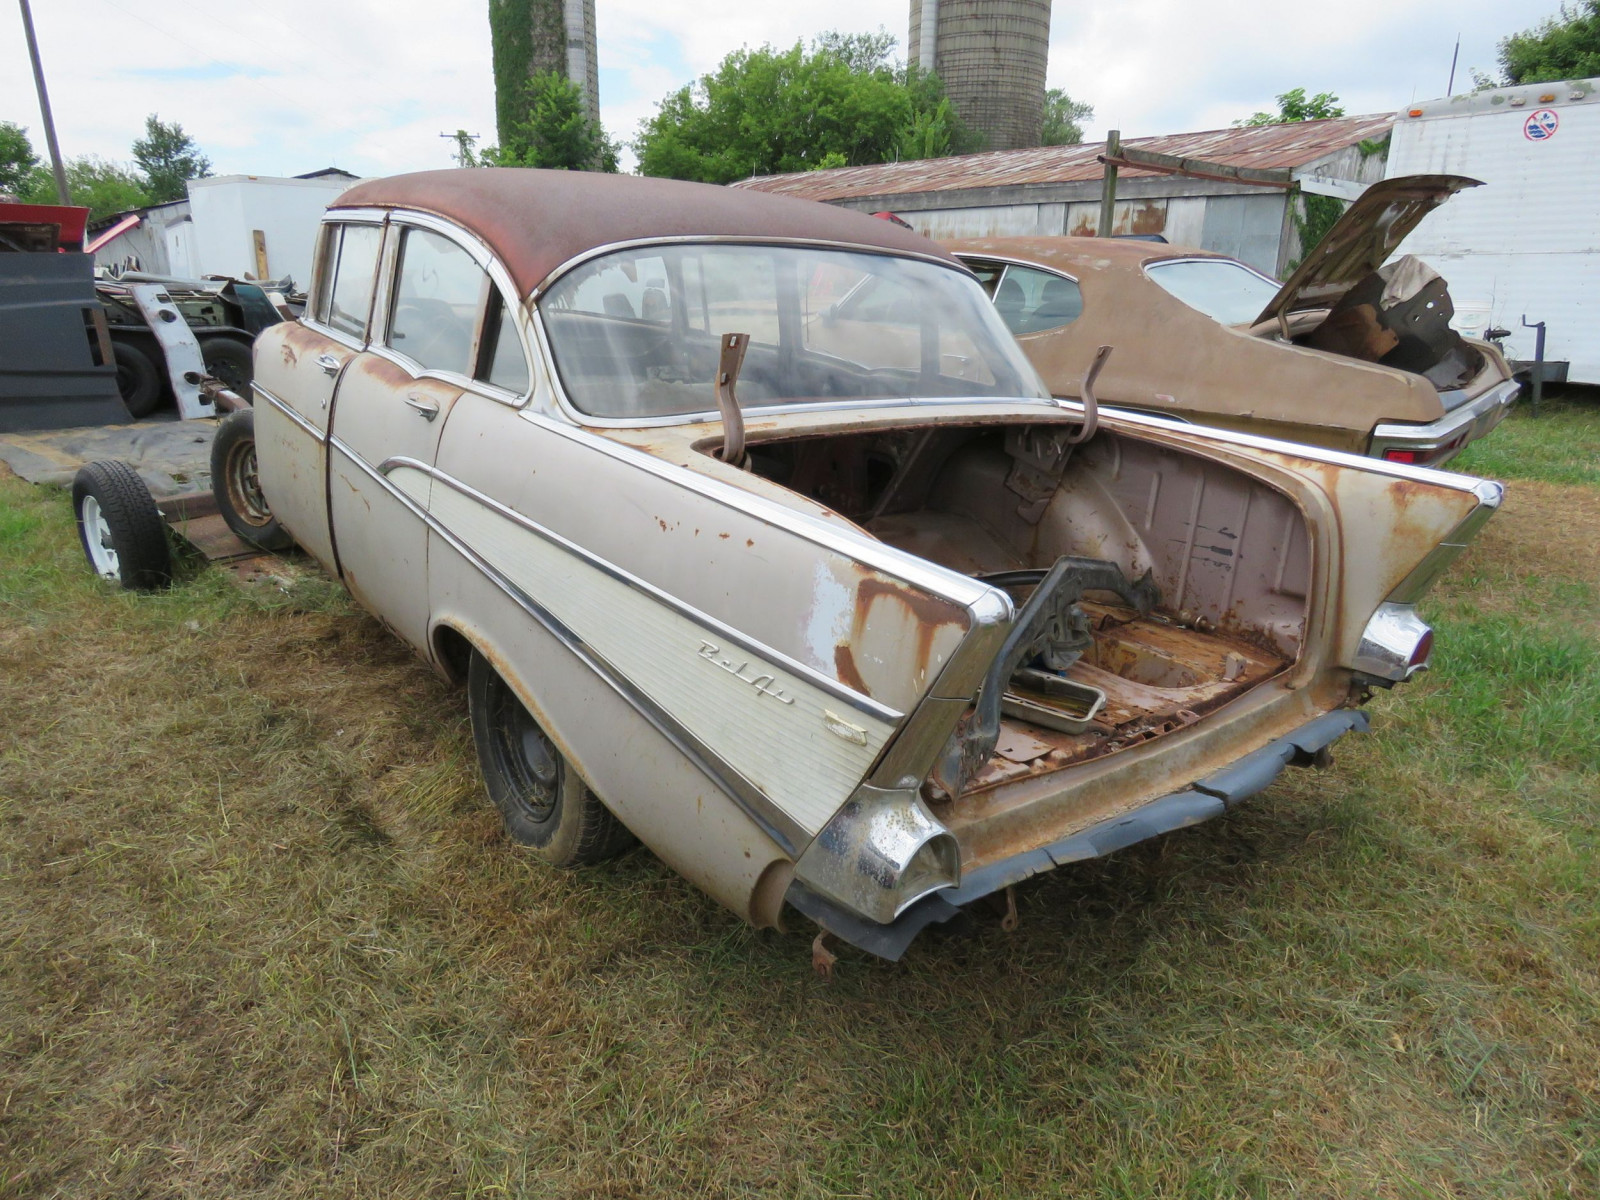 1957 Chevrolet 4dr Sedan for Rod or Restore - Image 6